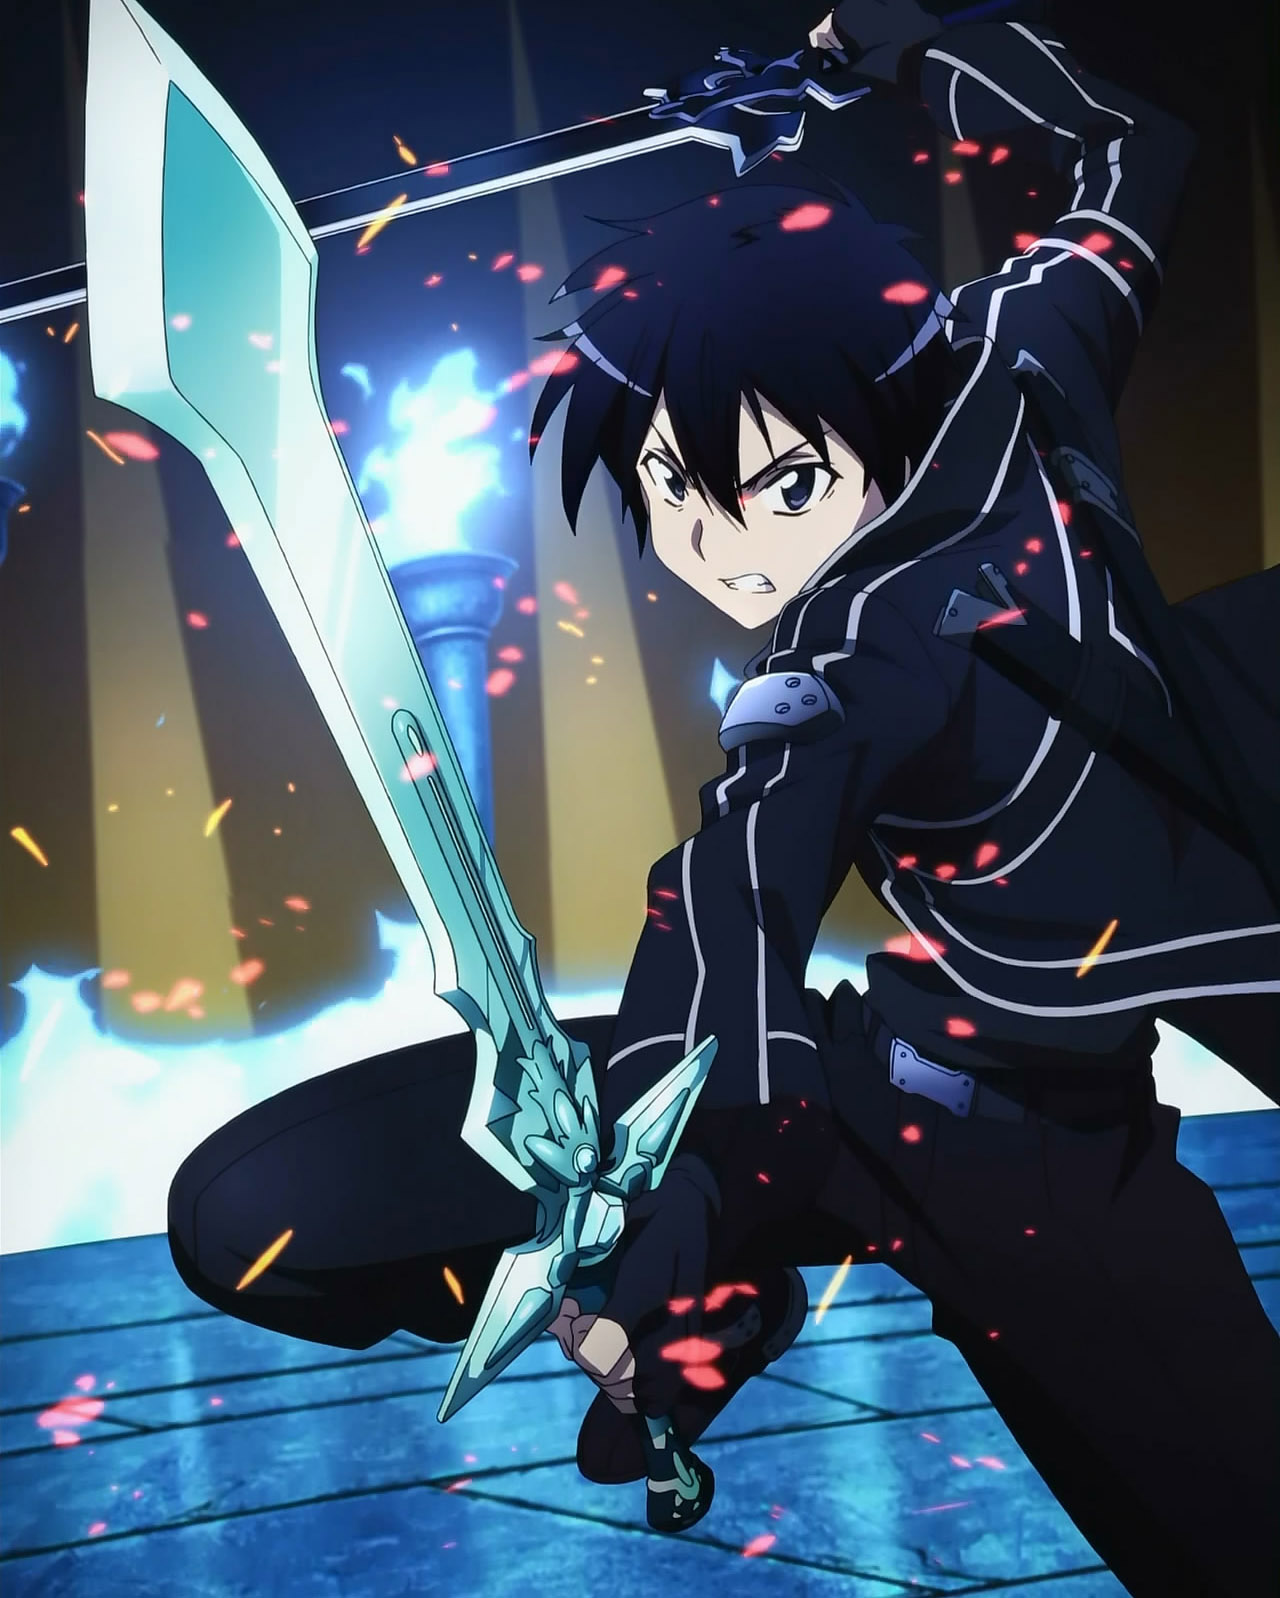 ... SAO Hd Wallpaper | Desktop Backgrounds for Free HD Wallpaper | wall